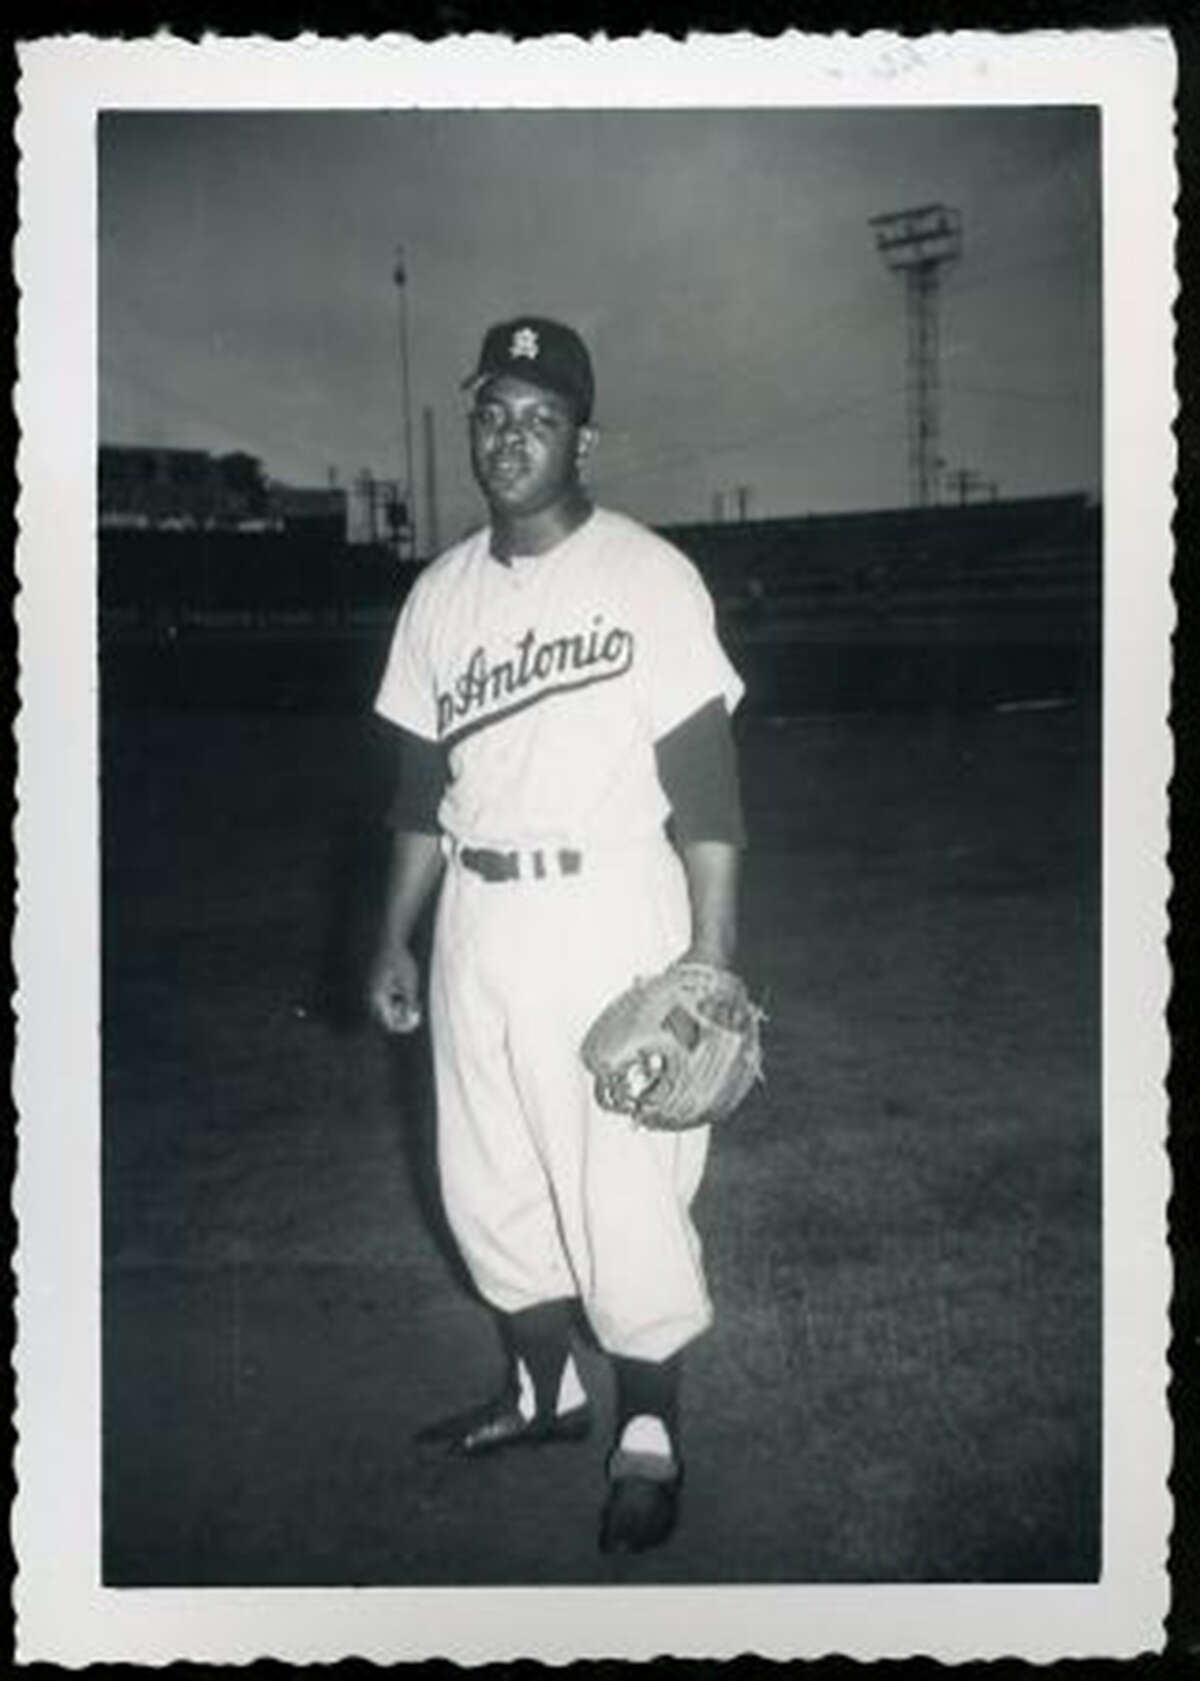 Charlie White of the Texas League's Missions poses at Mission Stadium in San Antonio in an early 1950s photo.